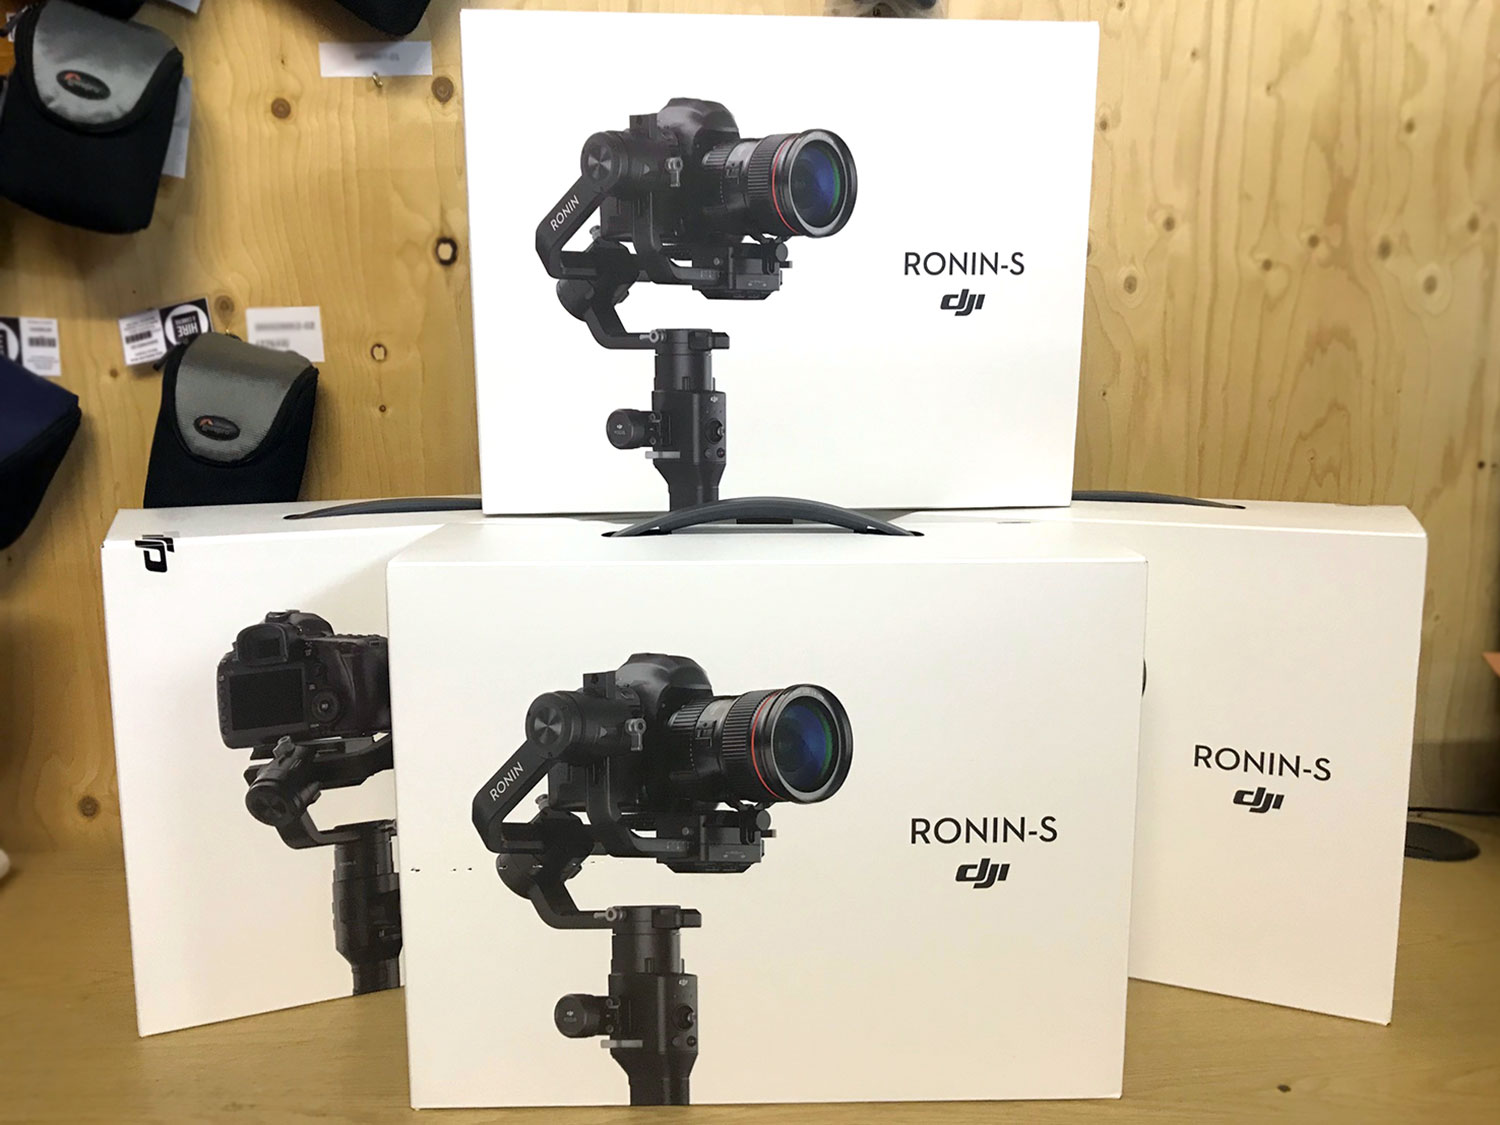 ronin s firmware from 1.1 to 1.8